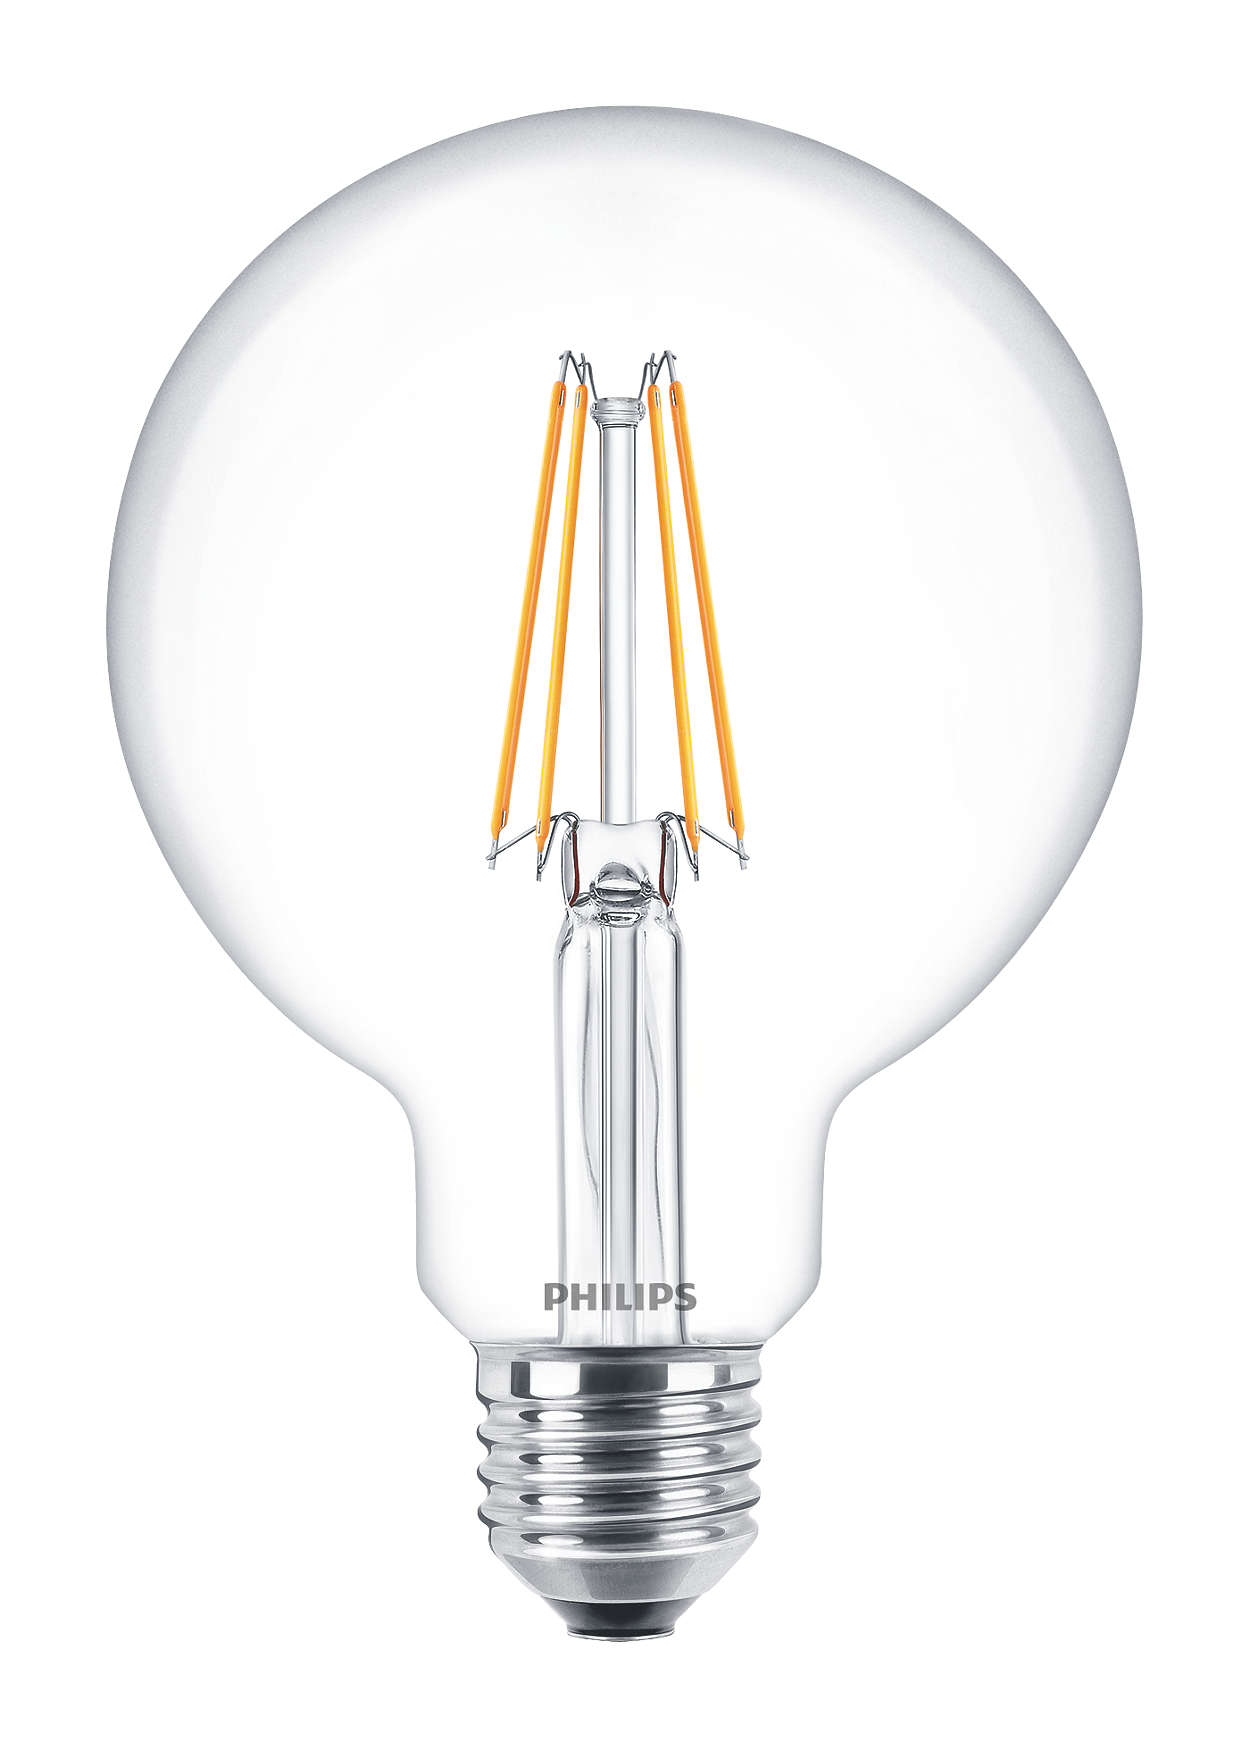 PHILIPS FILAMENT Classic LEDglobe 6-60W E27 827 G93 ND retro LED žárovka